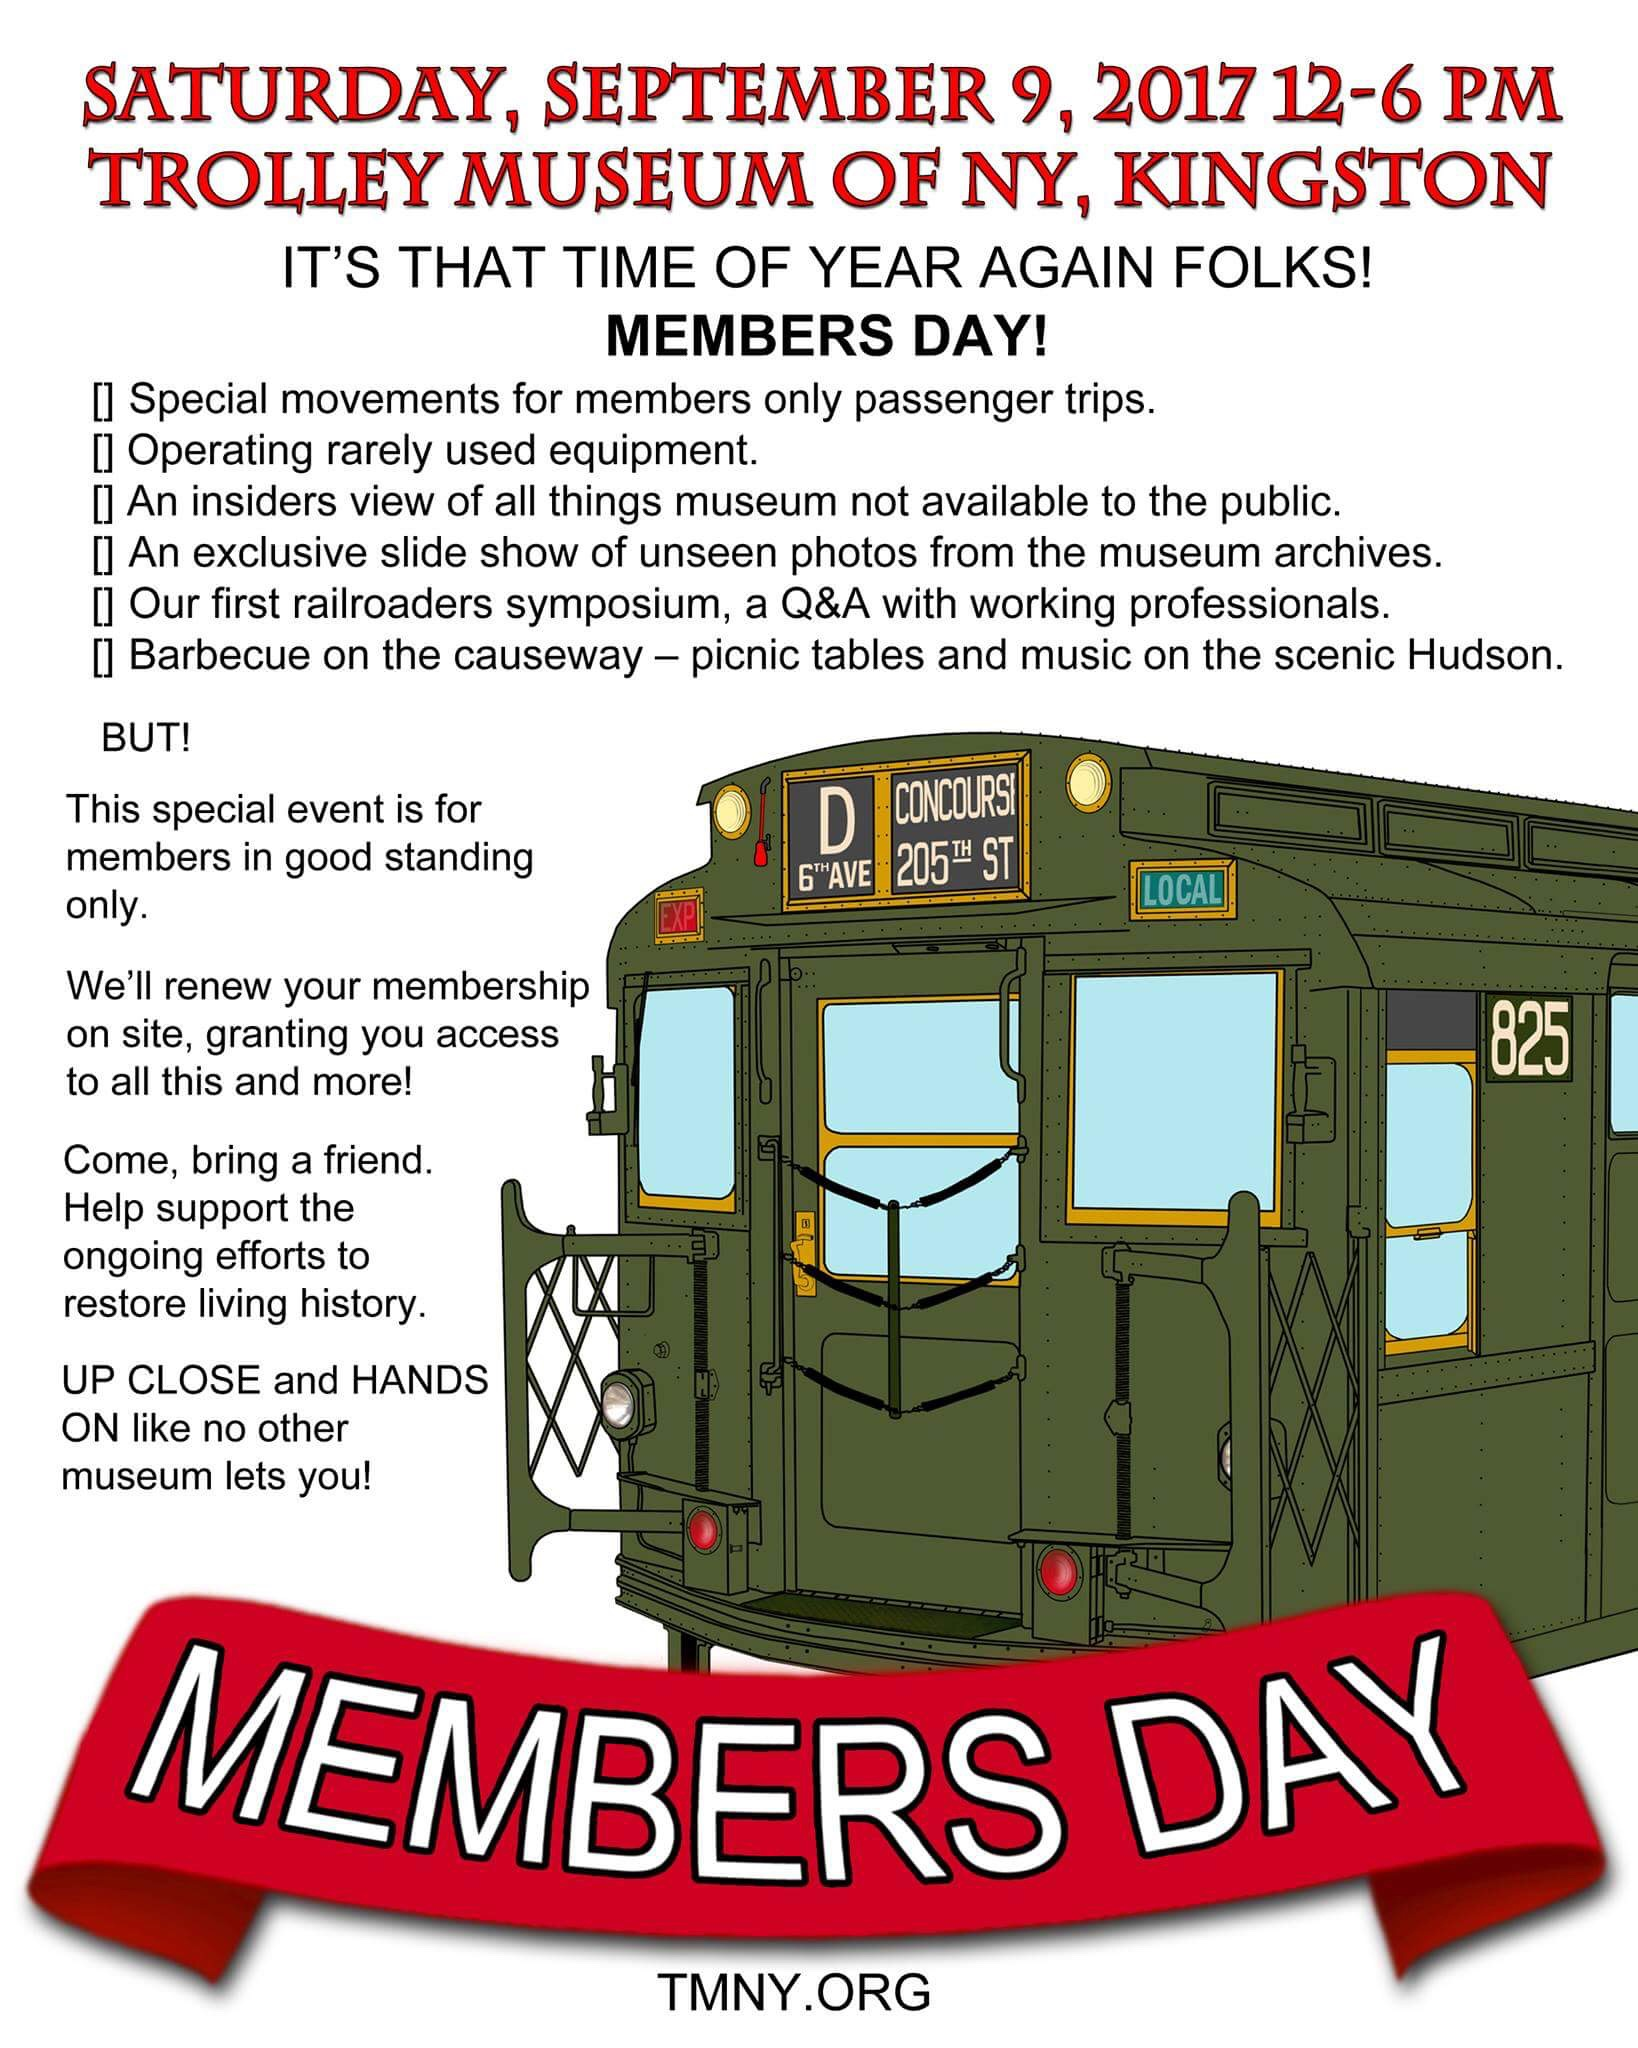 Members Day 2017! Saturday, September 9th from 12 Noon - 6:00pm